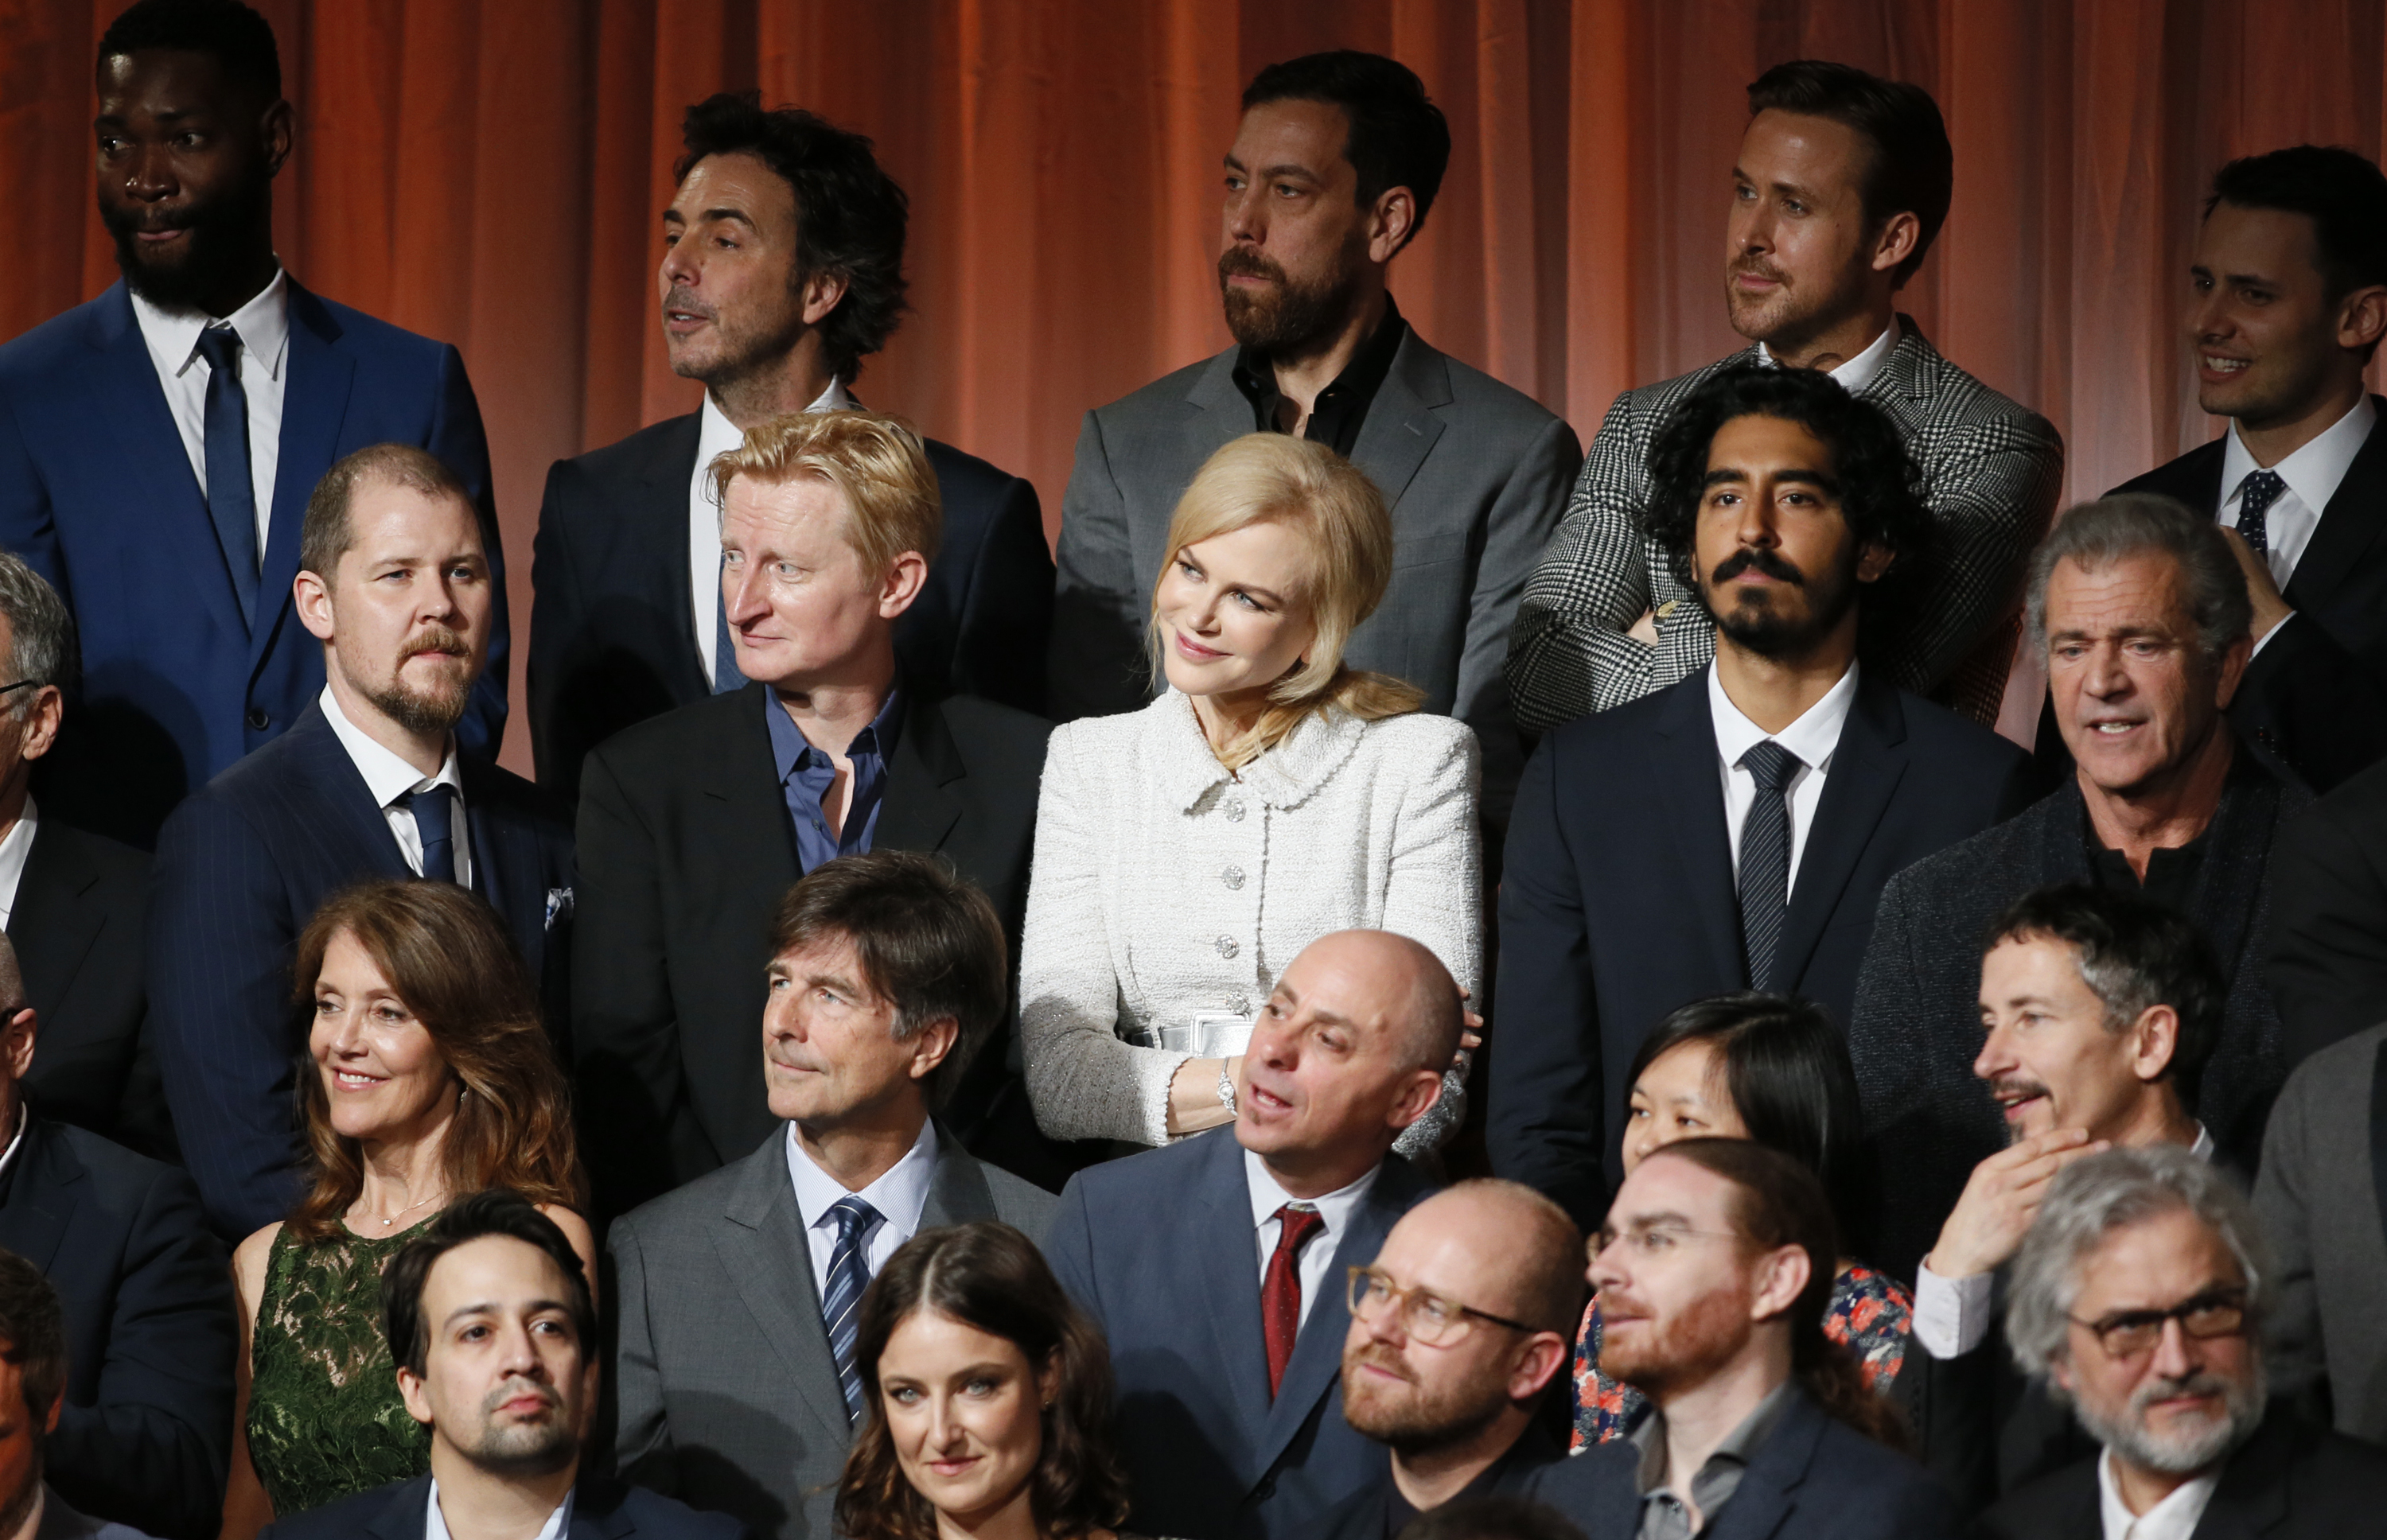 Nicole Kidman, middle row, third from left, Dev Patel, Mel Gibson and nominees at the 89th Academy Awards Nominees Luncheon at The Beverly Hilton Hotel, Feb. 6, 2017, in Beverly Hills, Calif.